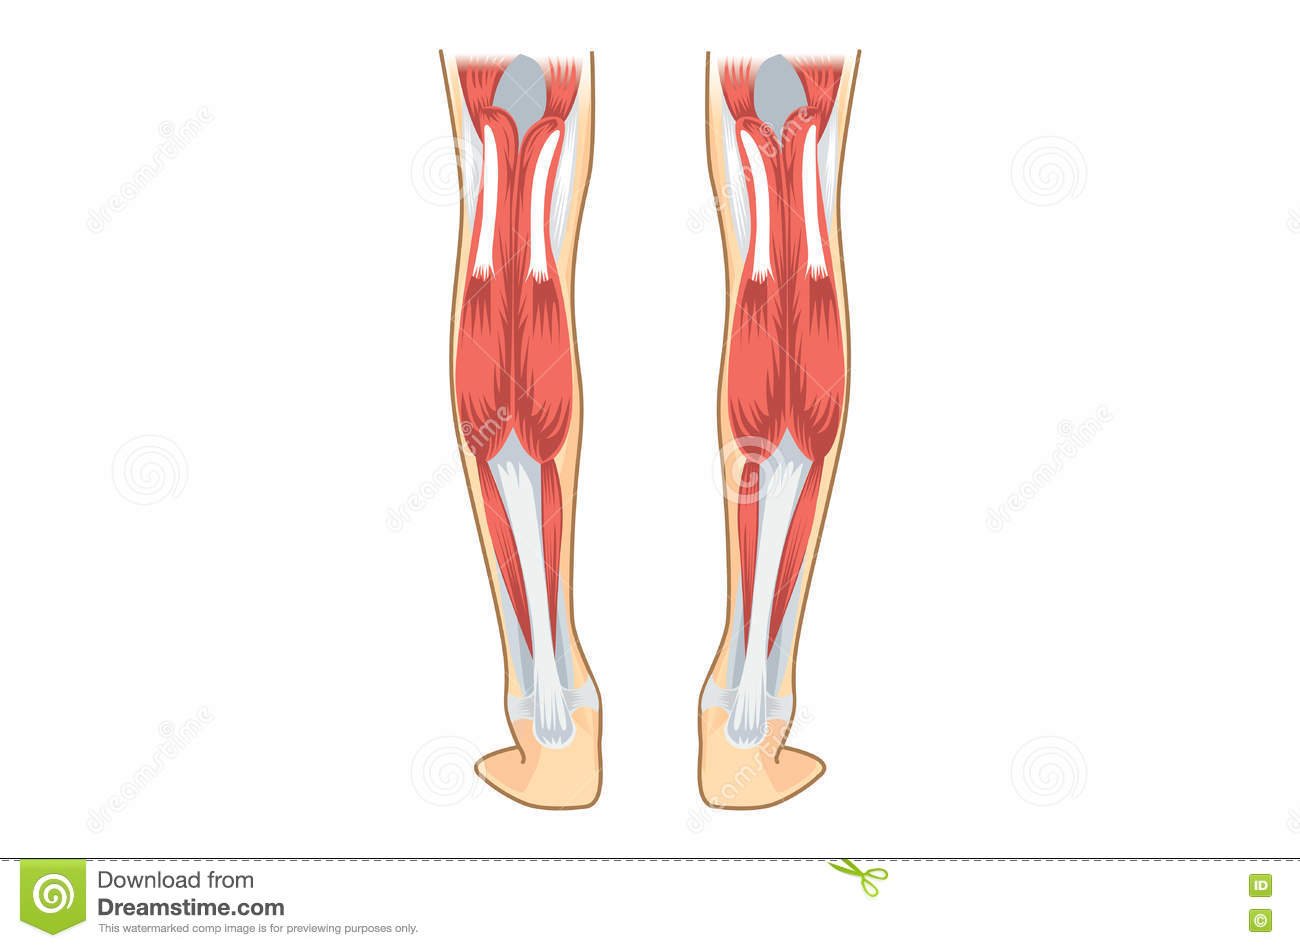 Calf Muscle of human. stock vector. Illustration of people - 81475241